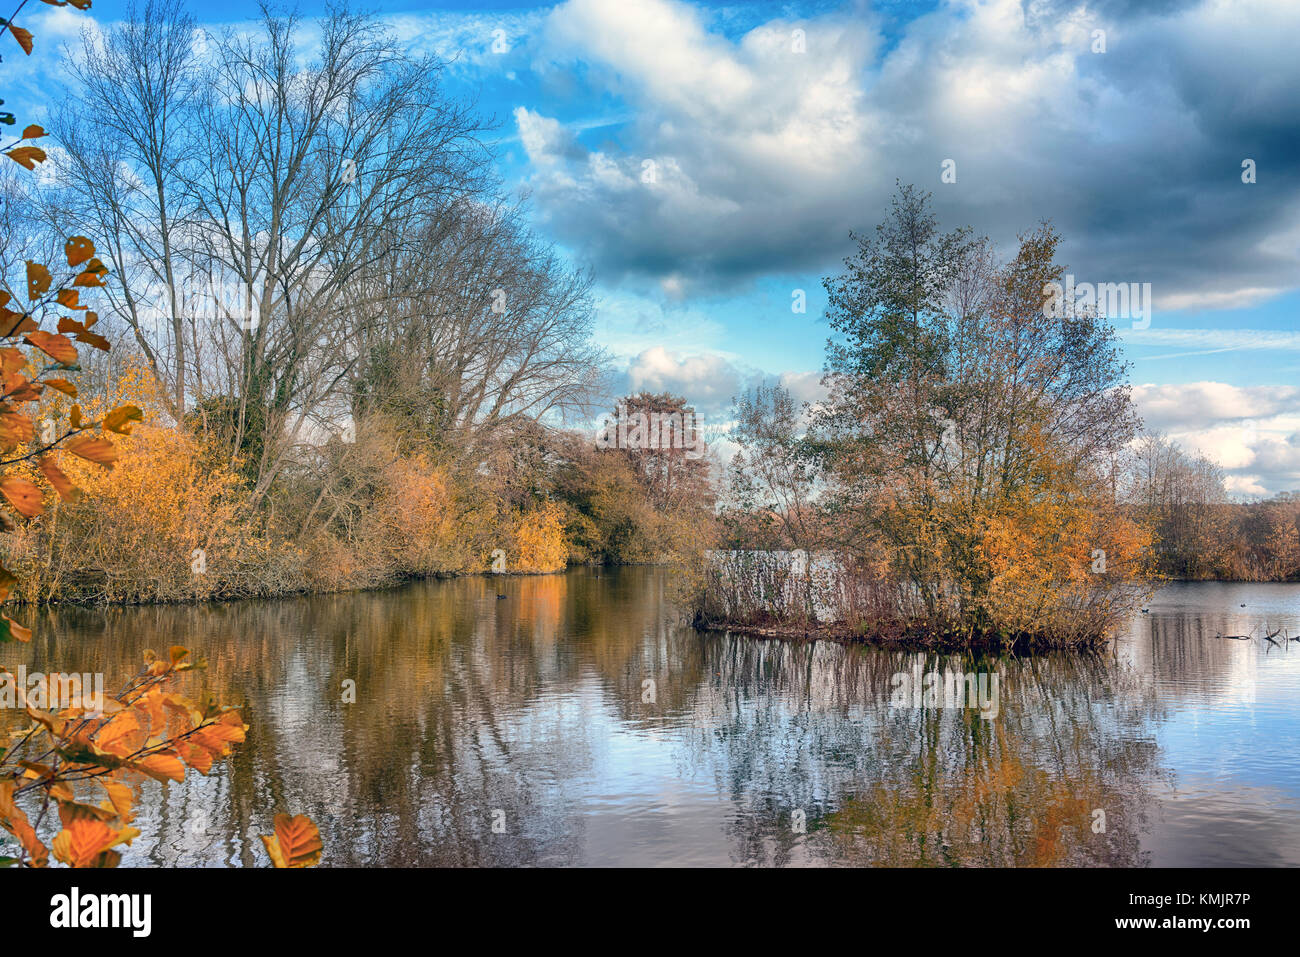 Stockers Lake, Rickmansworth, Hertfordshire, England, UK. Nature reserve and bird sanctuary. A diverse selection - Stock Image